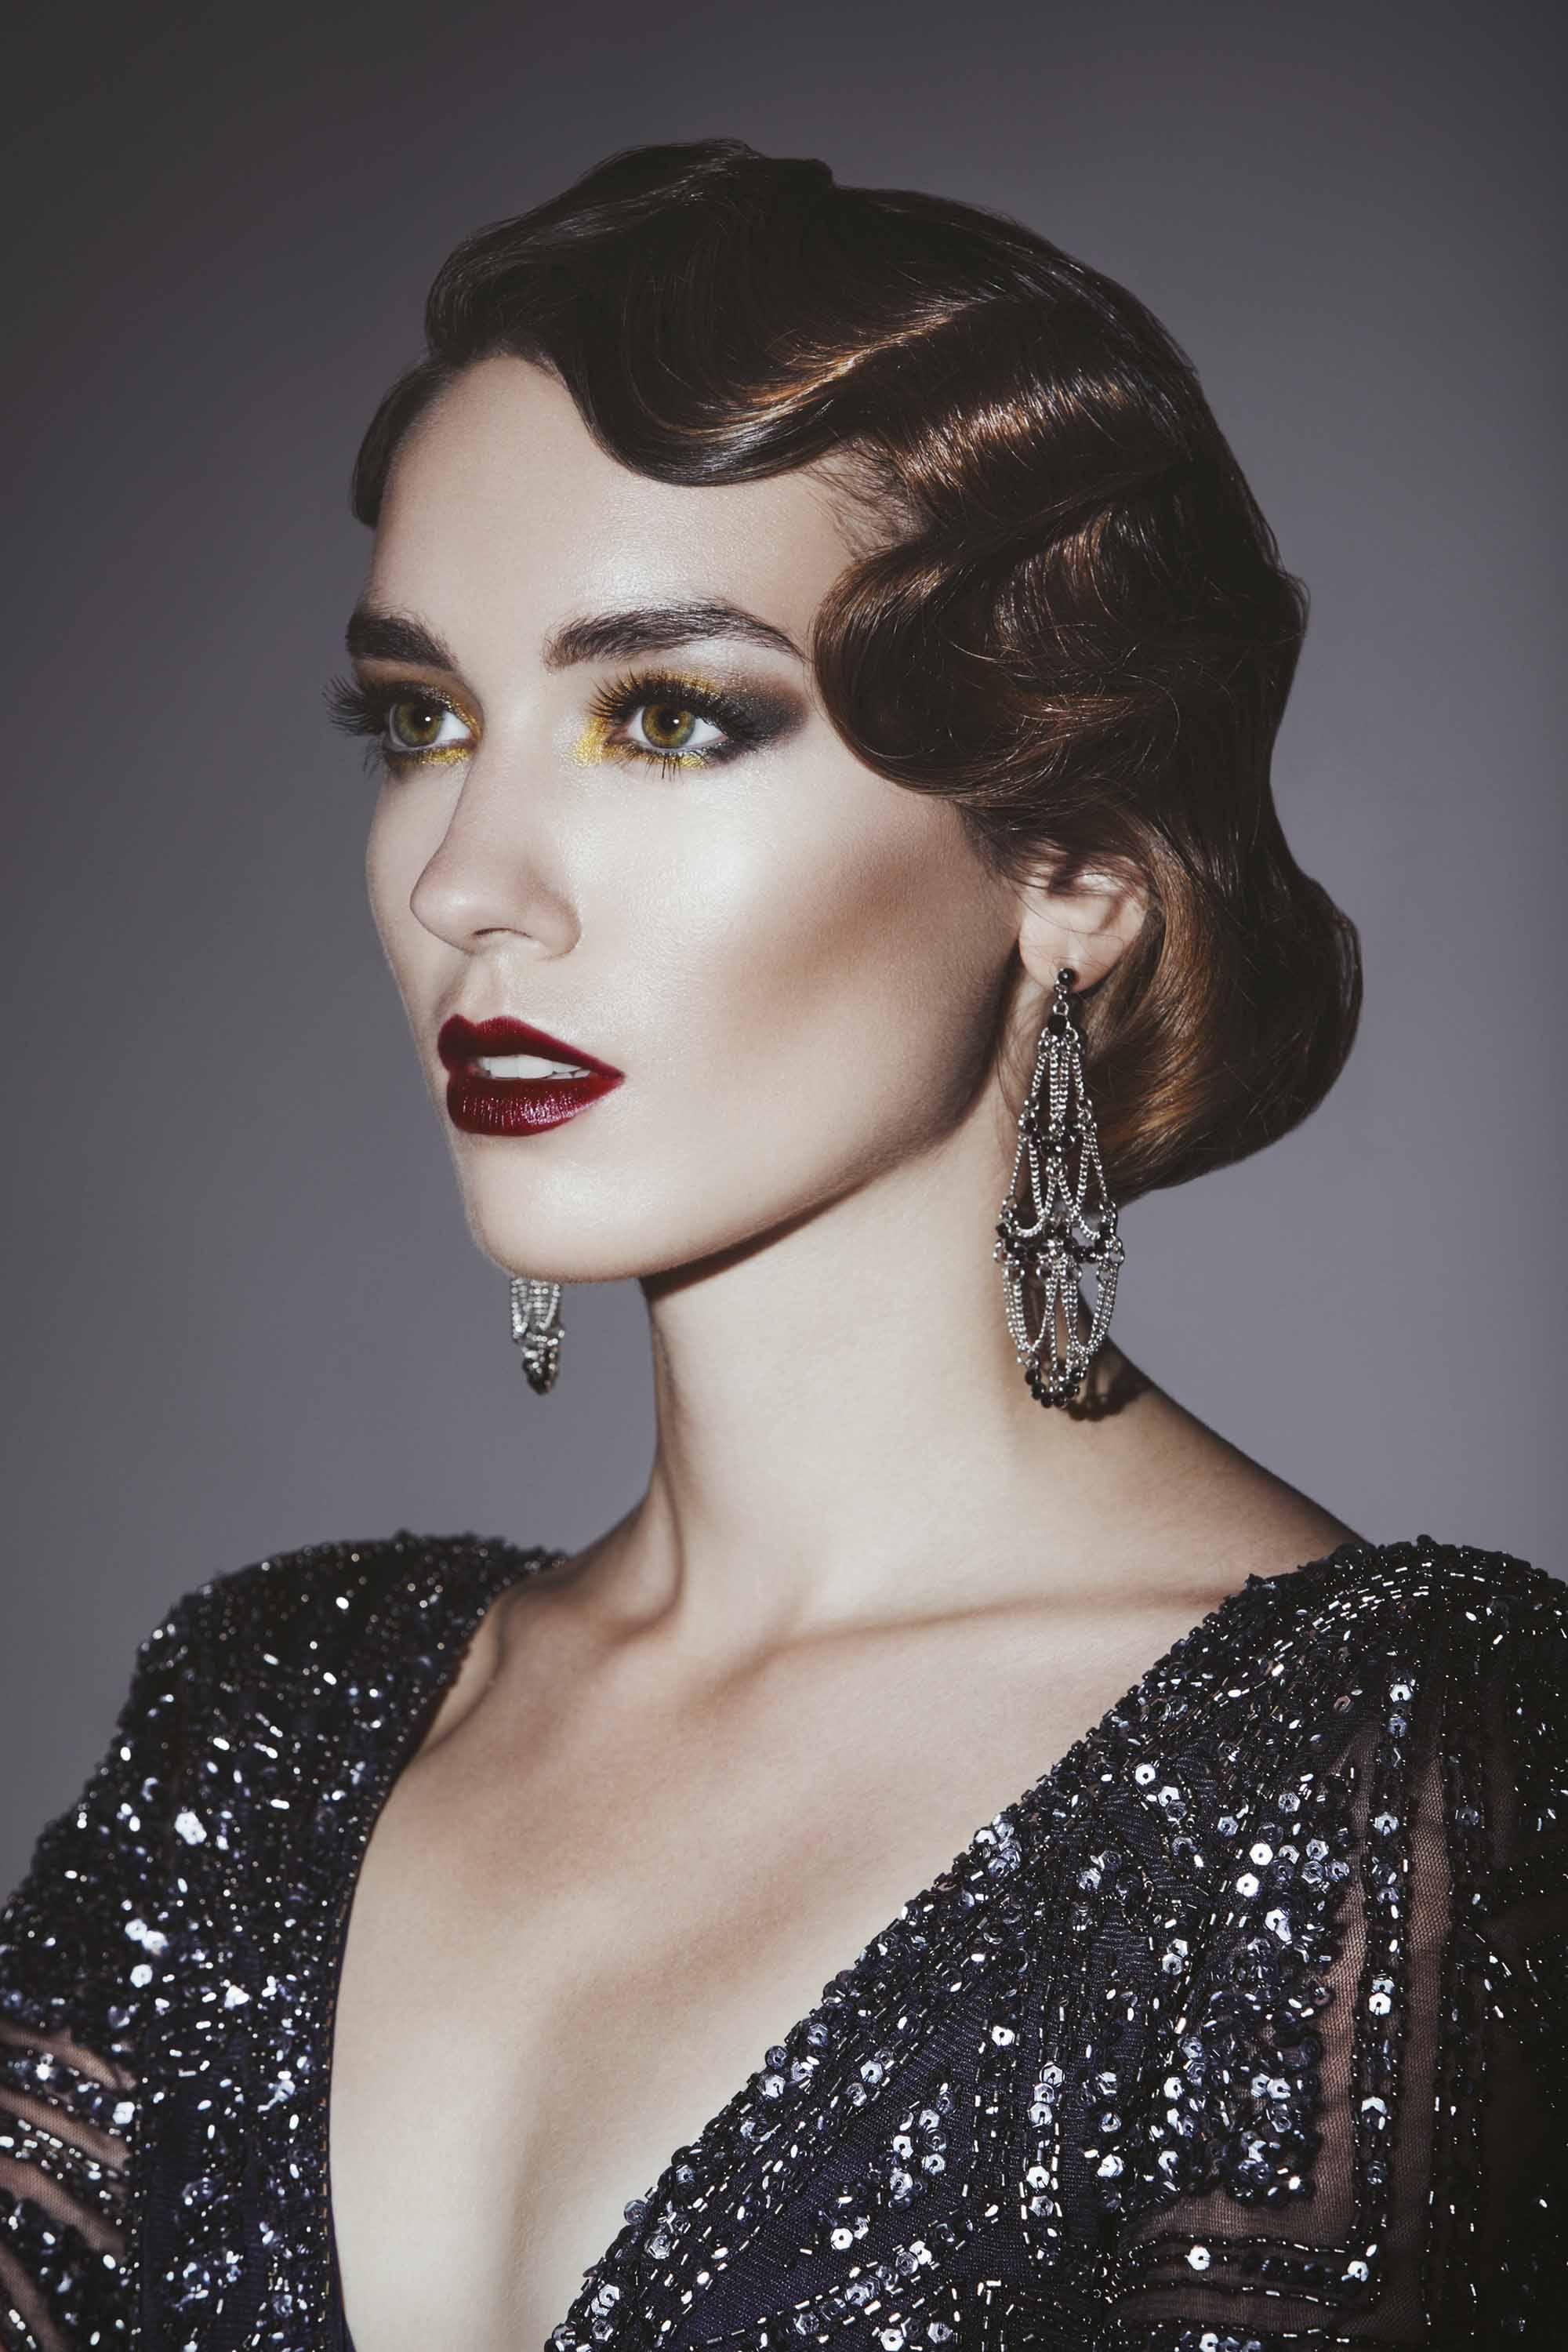 ec471d80616 Struggling to find an uber chic hairdo for Halloween  Then you need to take  a look at these incredible Great Gatsby hair style ideas!